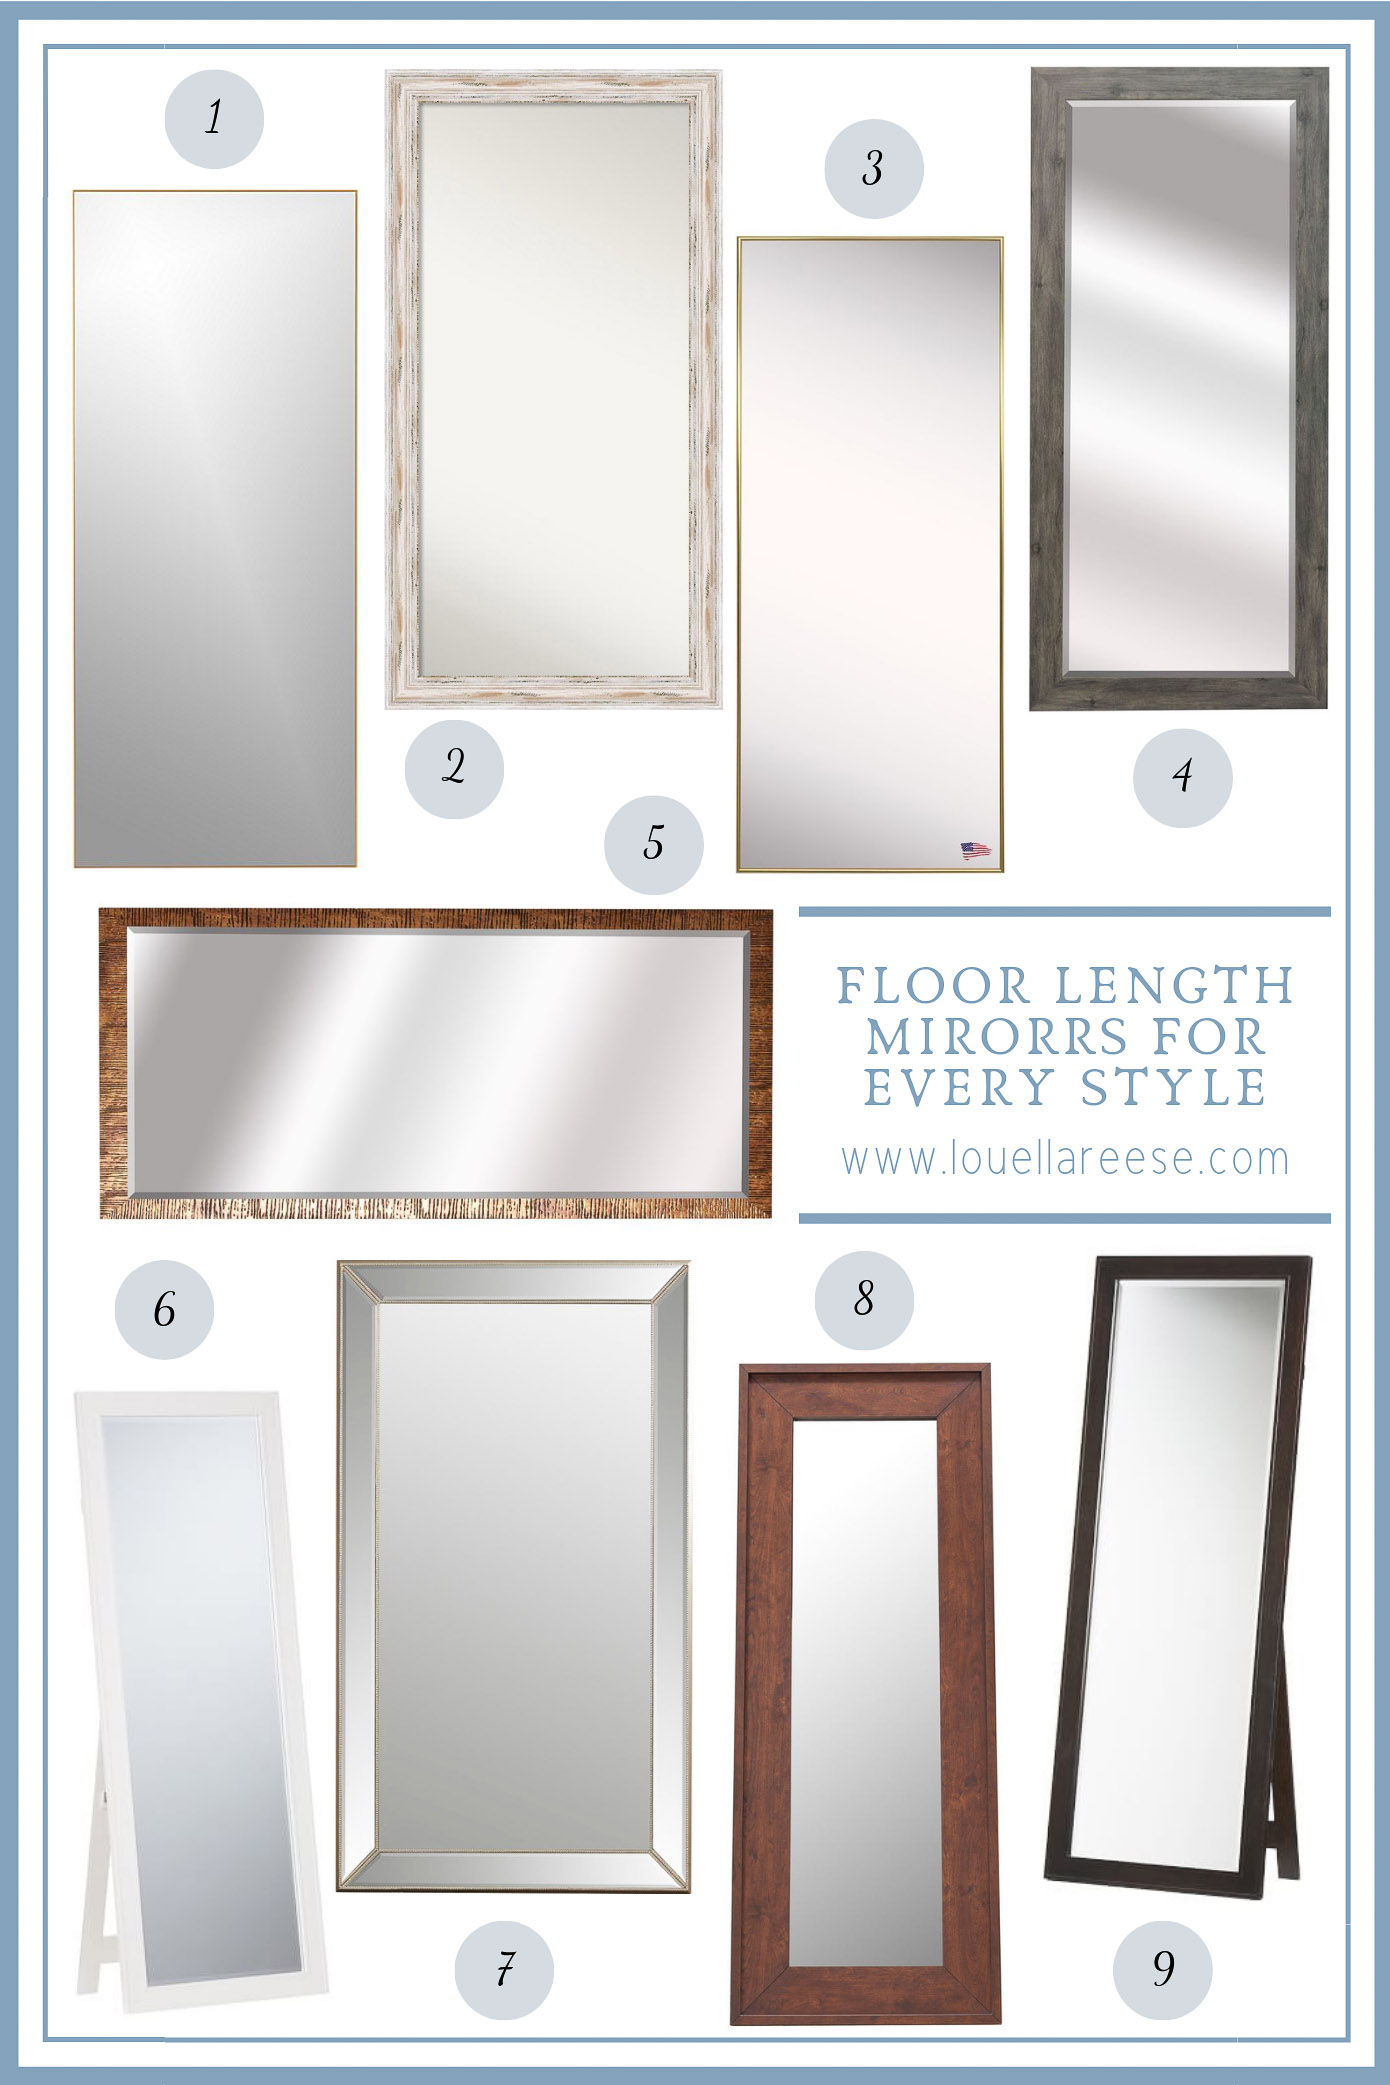 Floor Length Mirrors for Every Style | Louella Reese